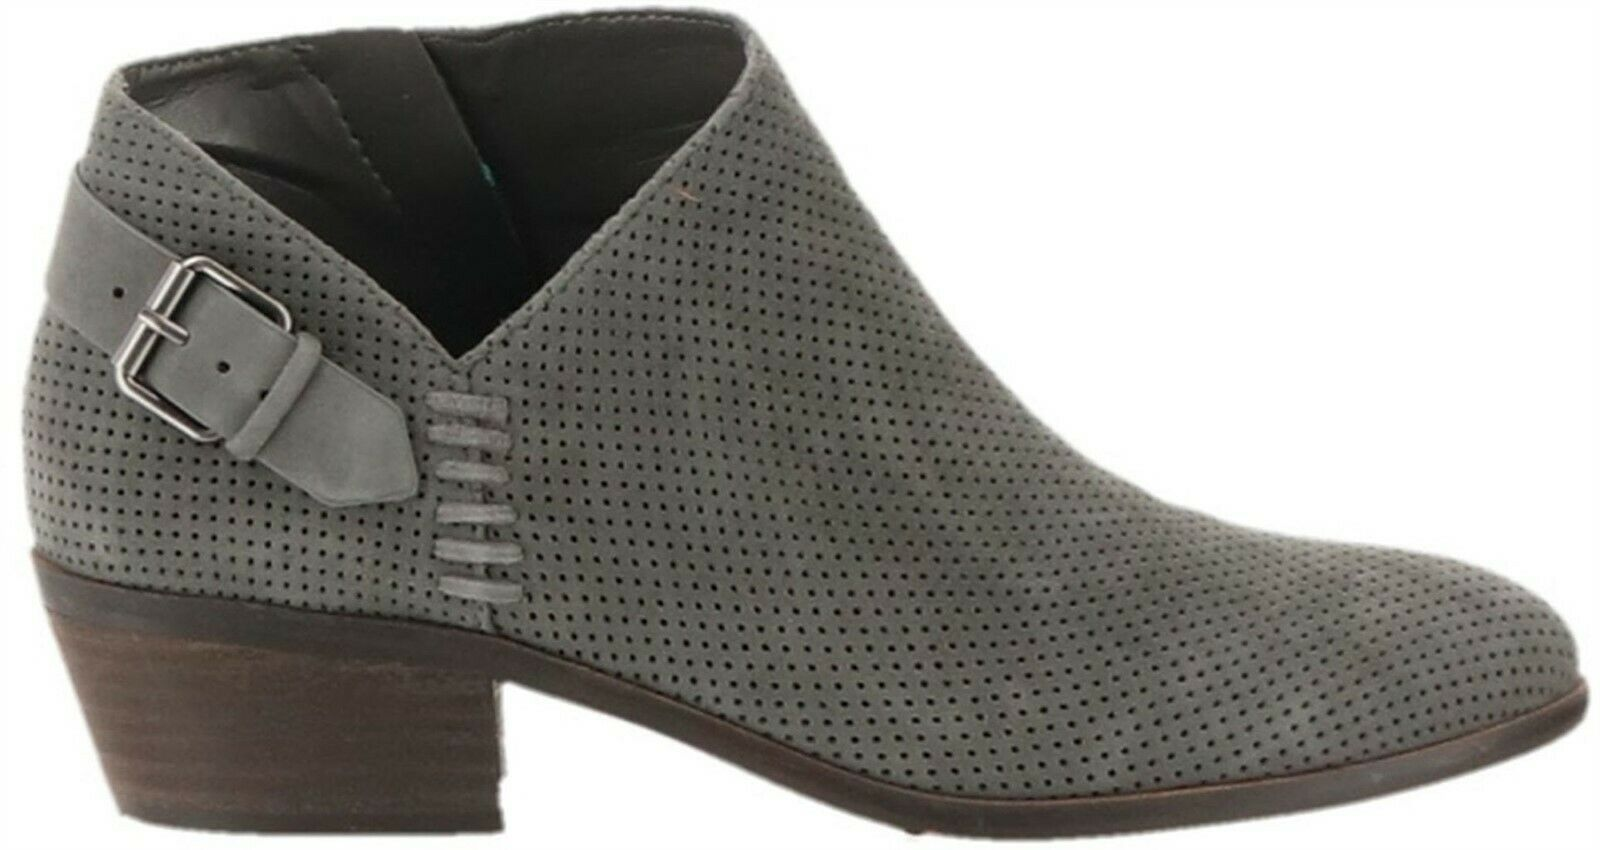 Primary image for Vince Camuto Suede Booties Buckle Parveen Greystone 5.5M NEW A311049